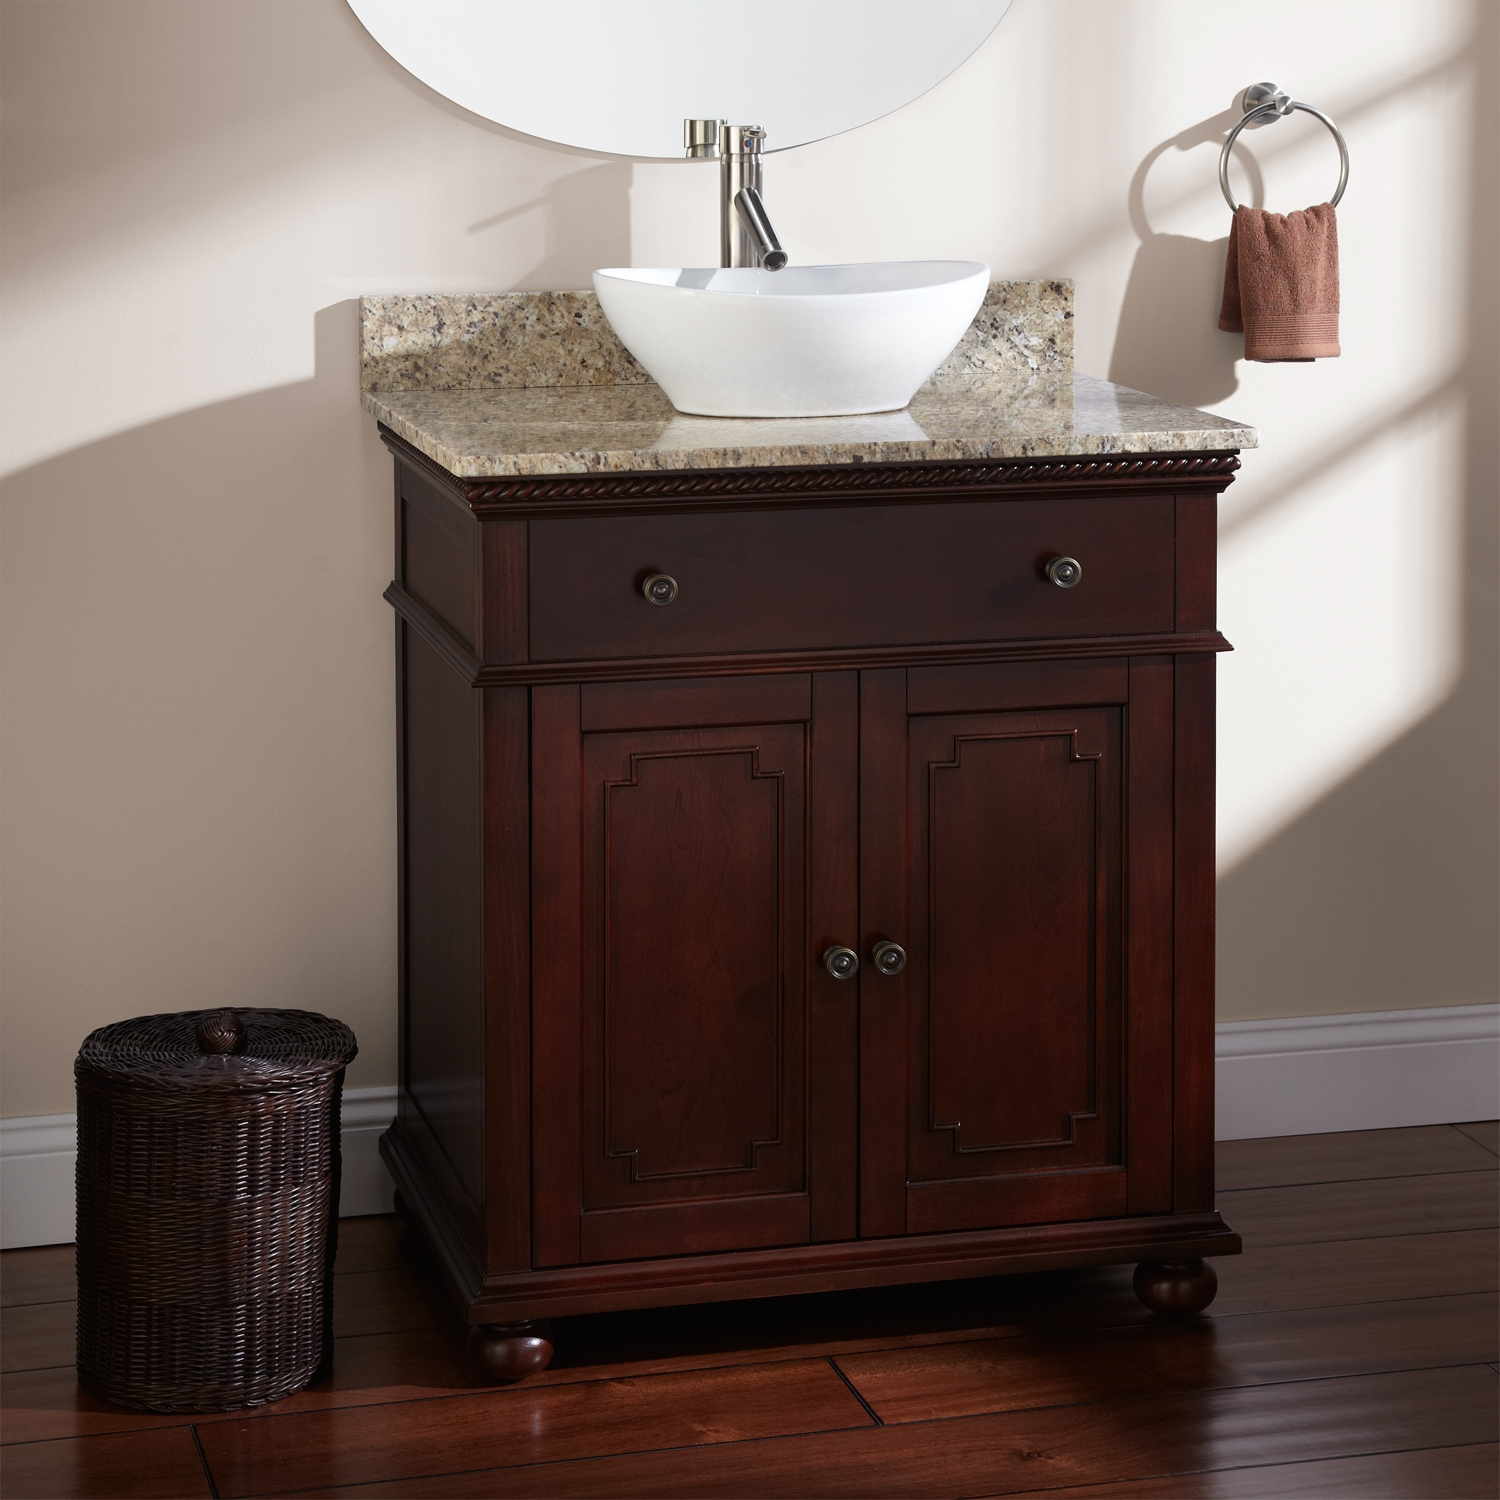 Permalink to Small Bathroom Vanities For Vessel Sinks